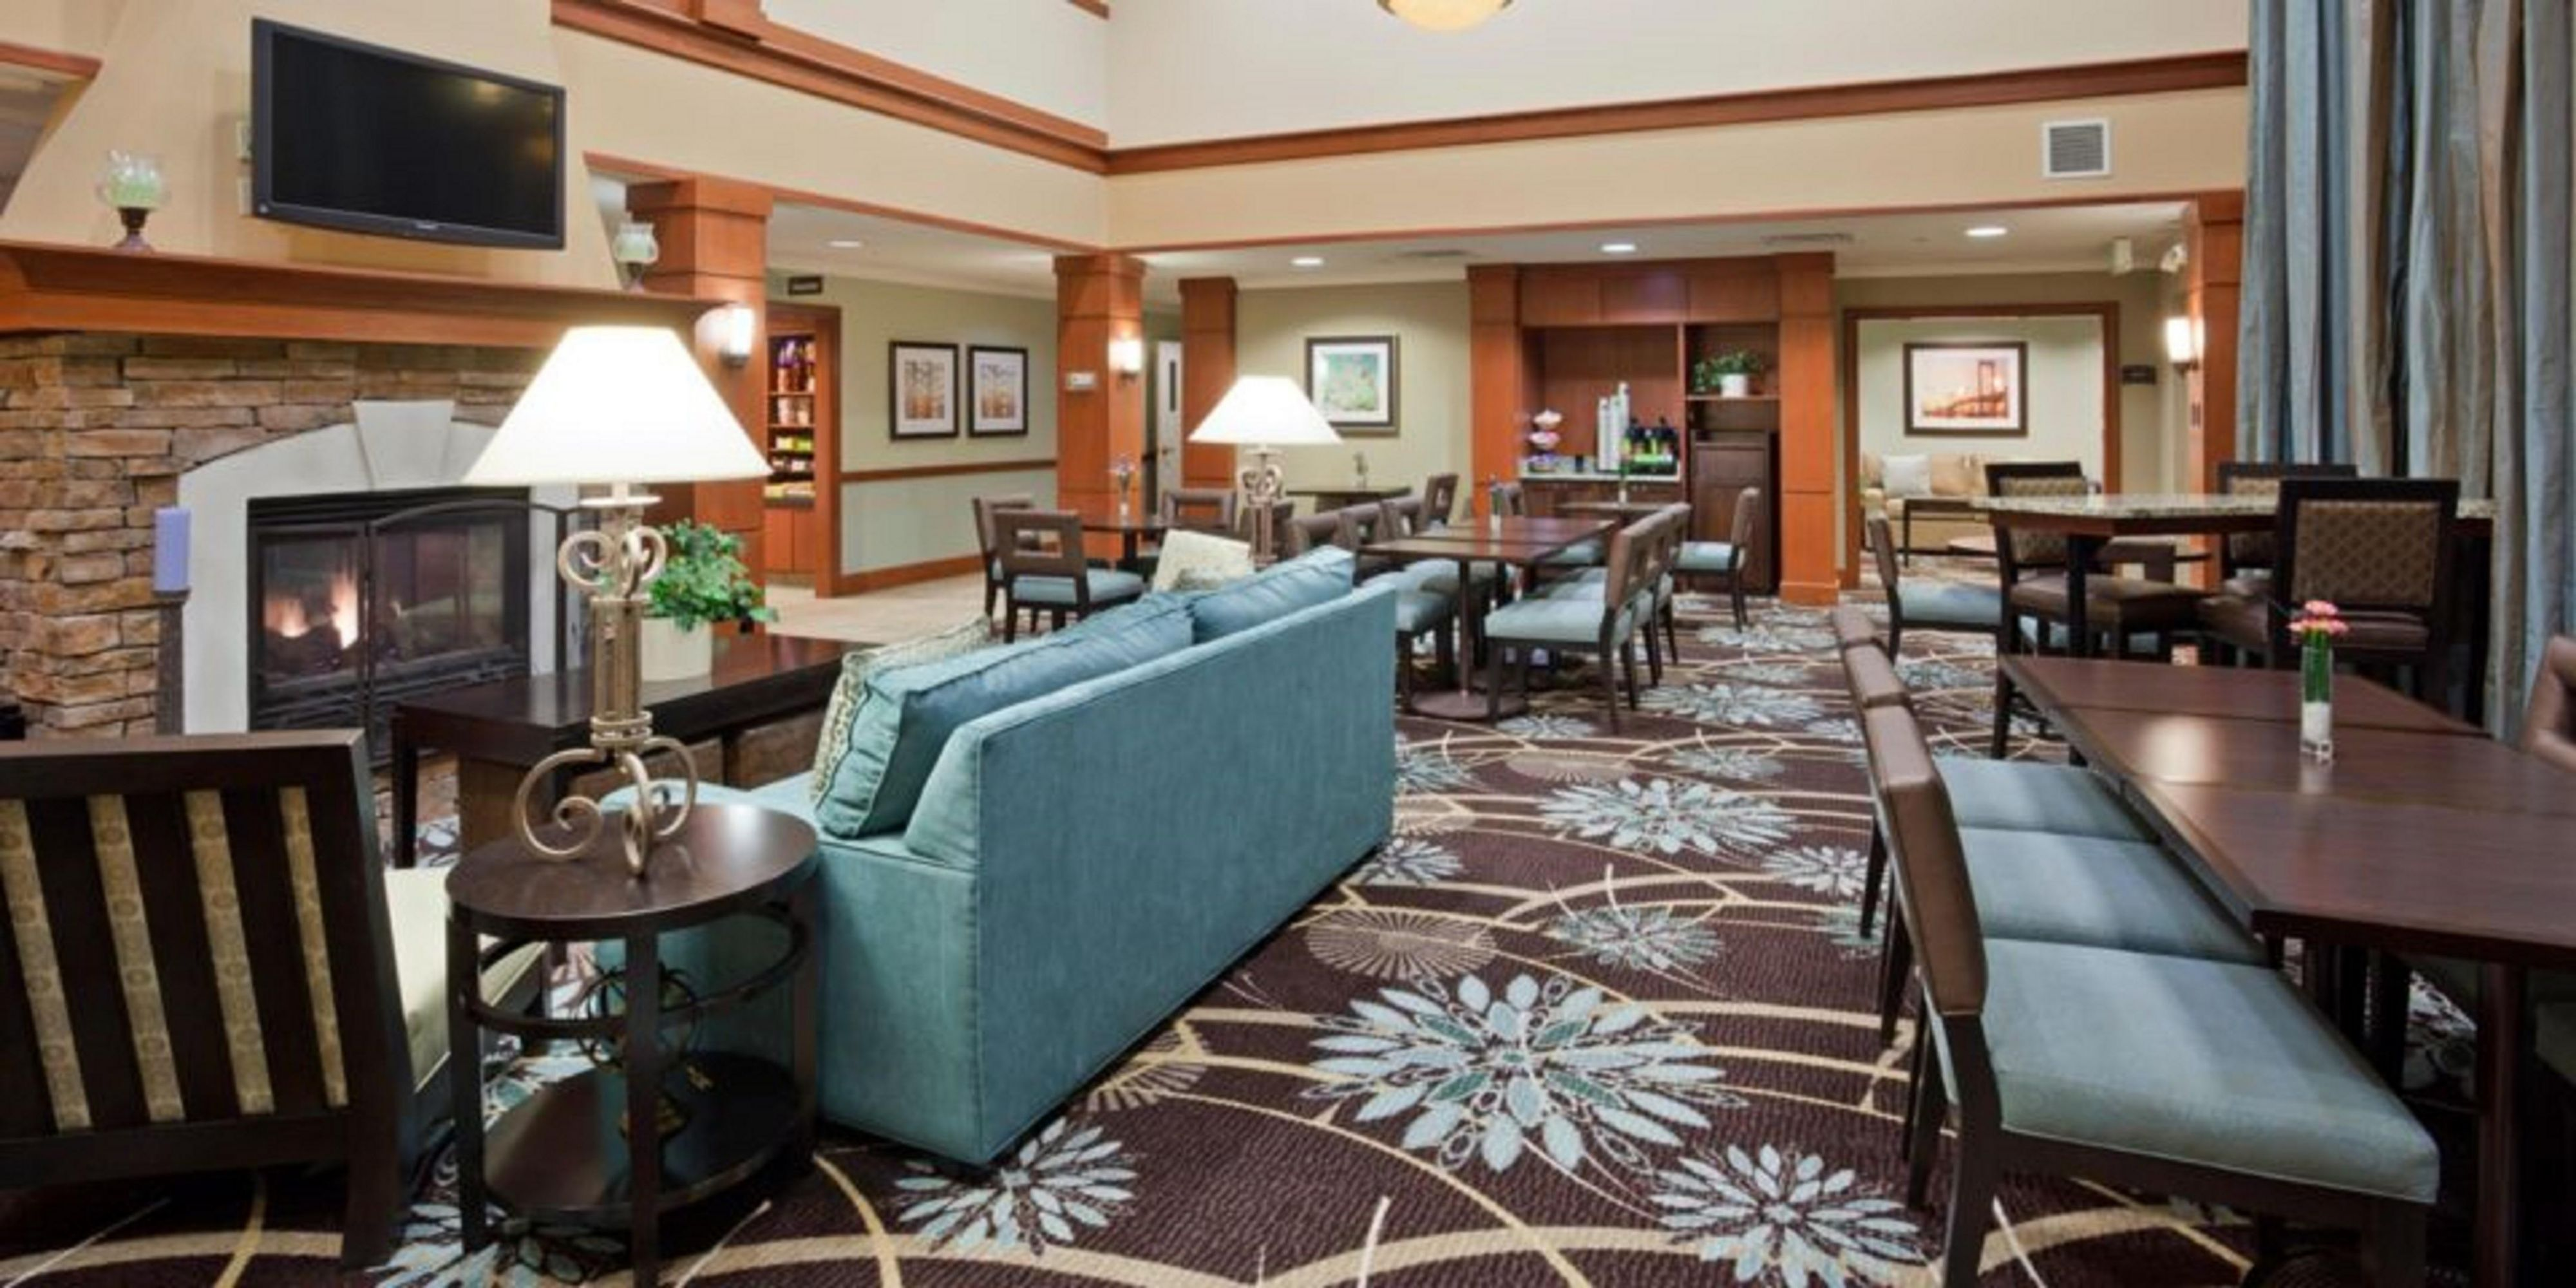 Staybridge Suites Mpls-Maple Grove/Arbor Lakes - Maple Grove, Minnesota